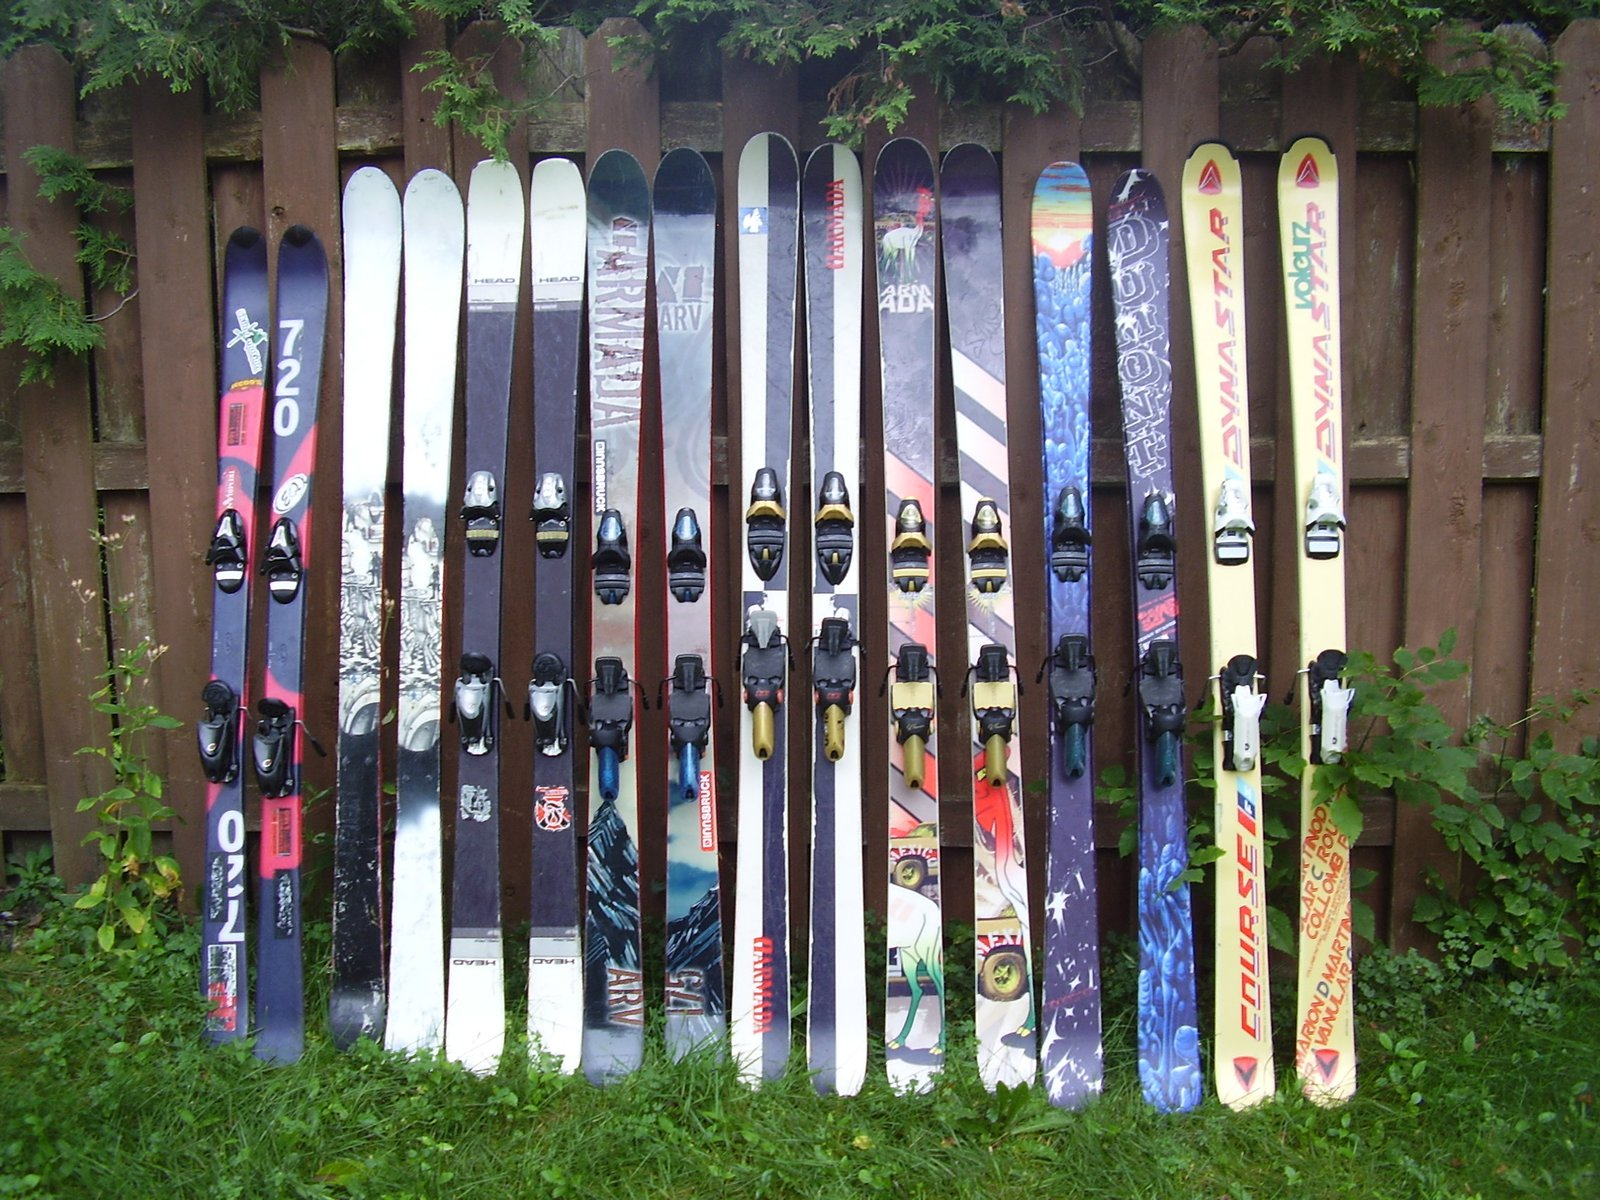 I have too many pairs of skis